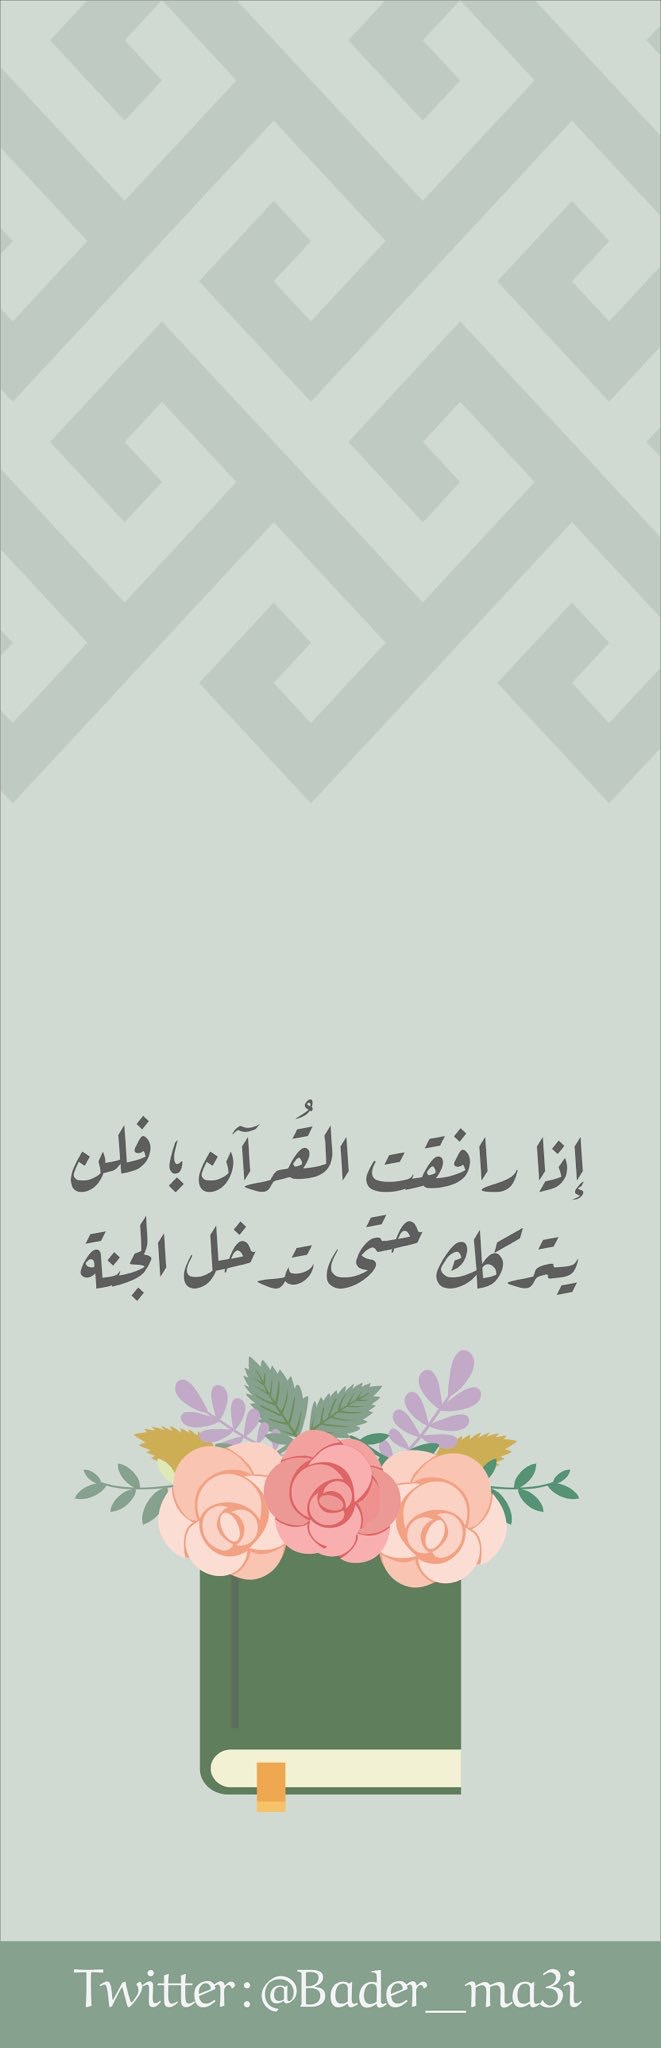 Pin By Hadooa89 On Arabic Printable مطبوعات عربية Iphone Background Islamic Pictures Cool Words